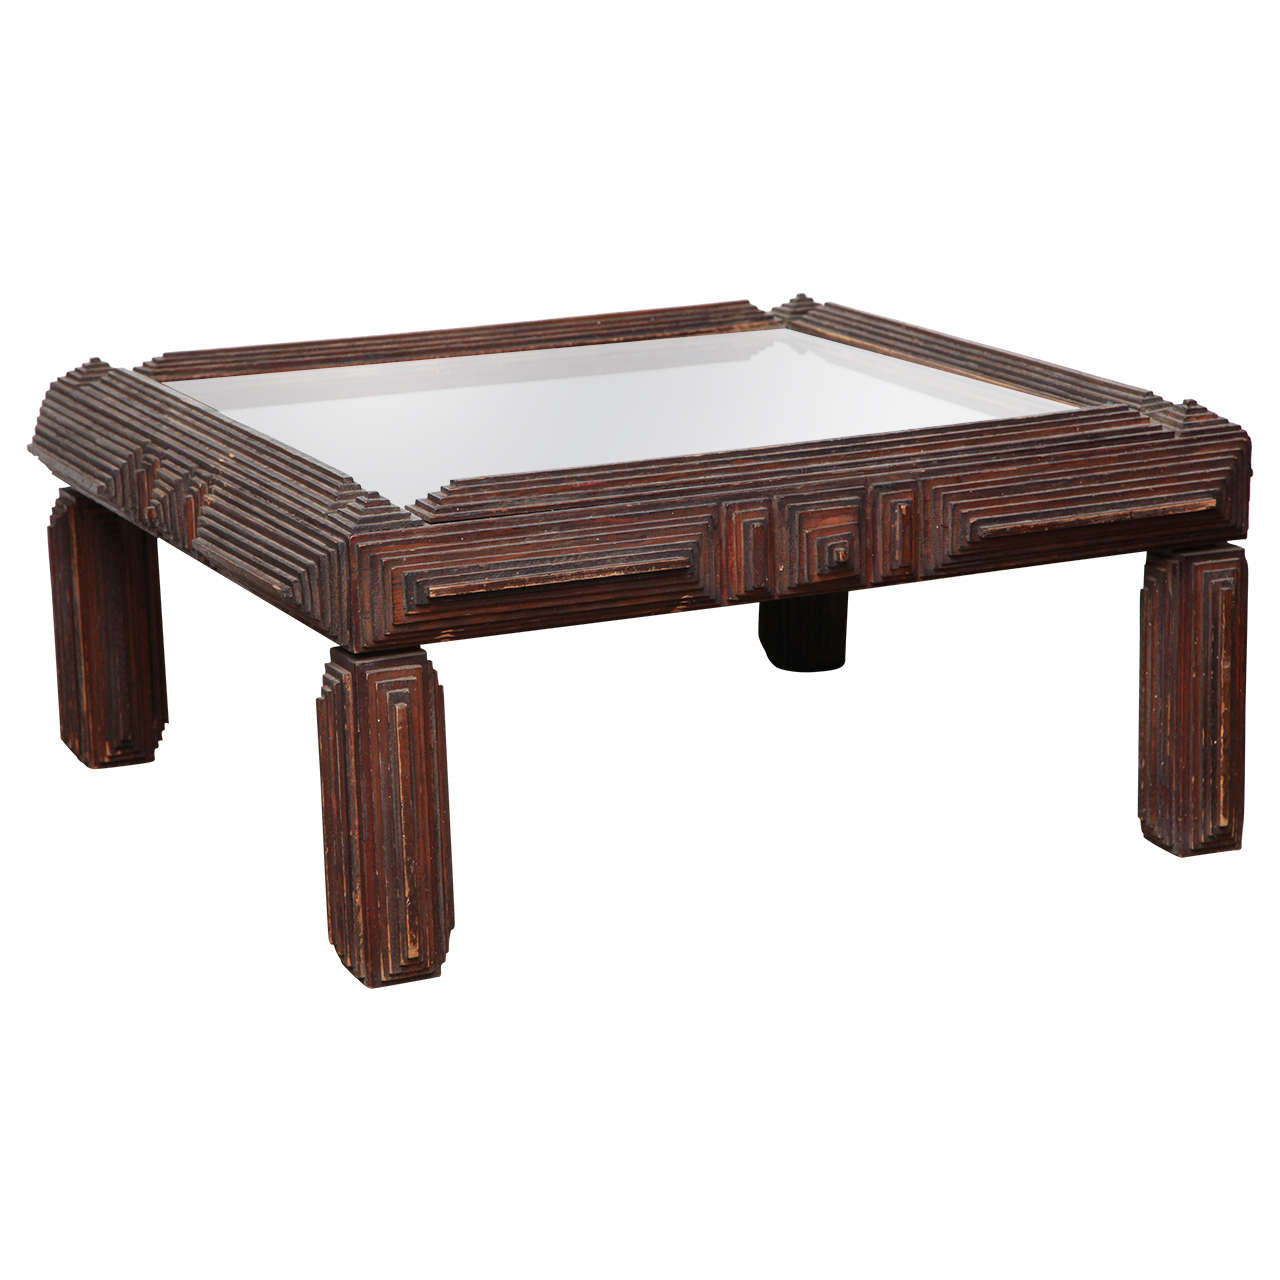 Tramp Art Coffee Table With Mirror Top At 1stdibs